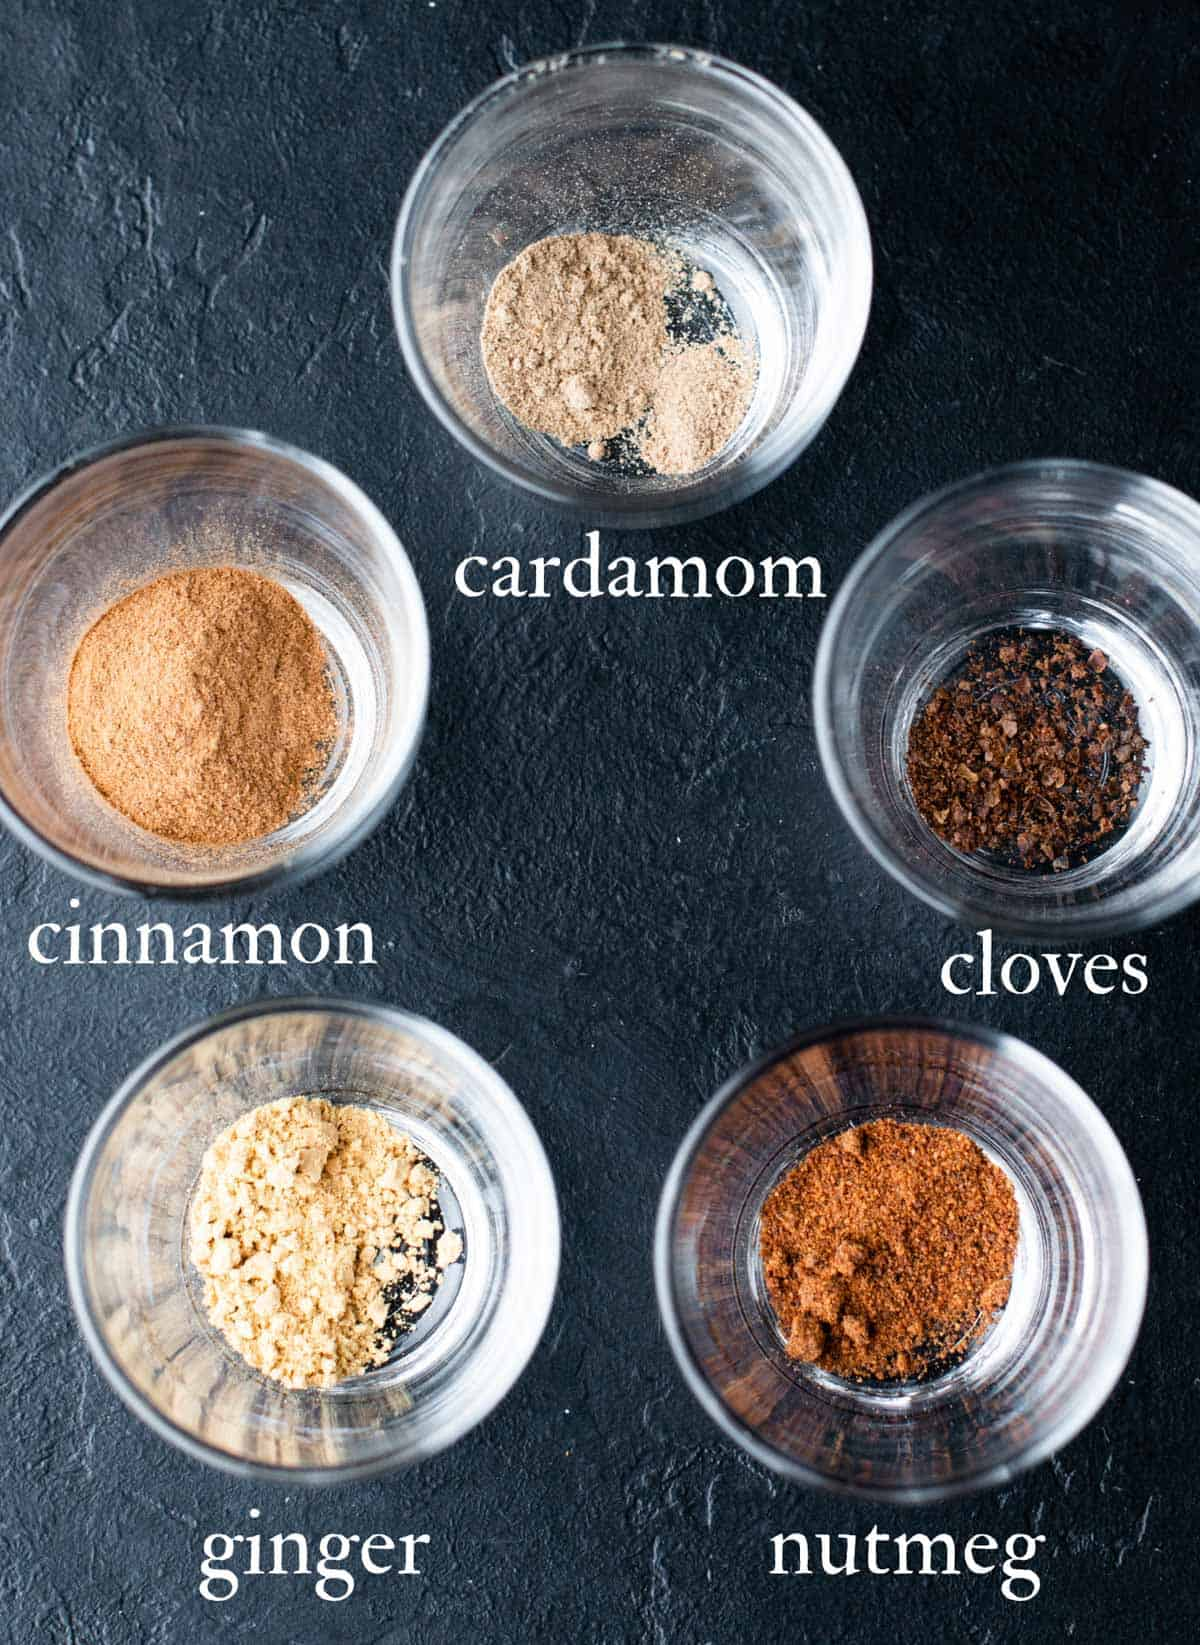 Image of the spices